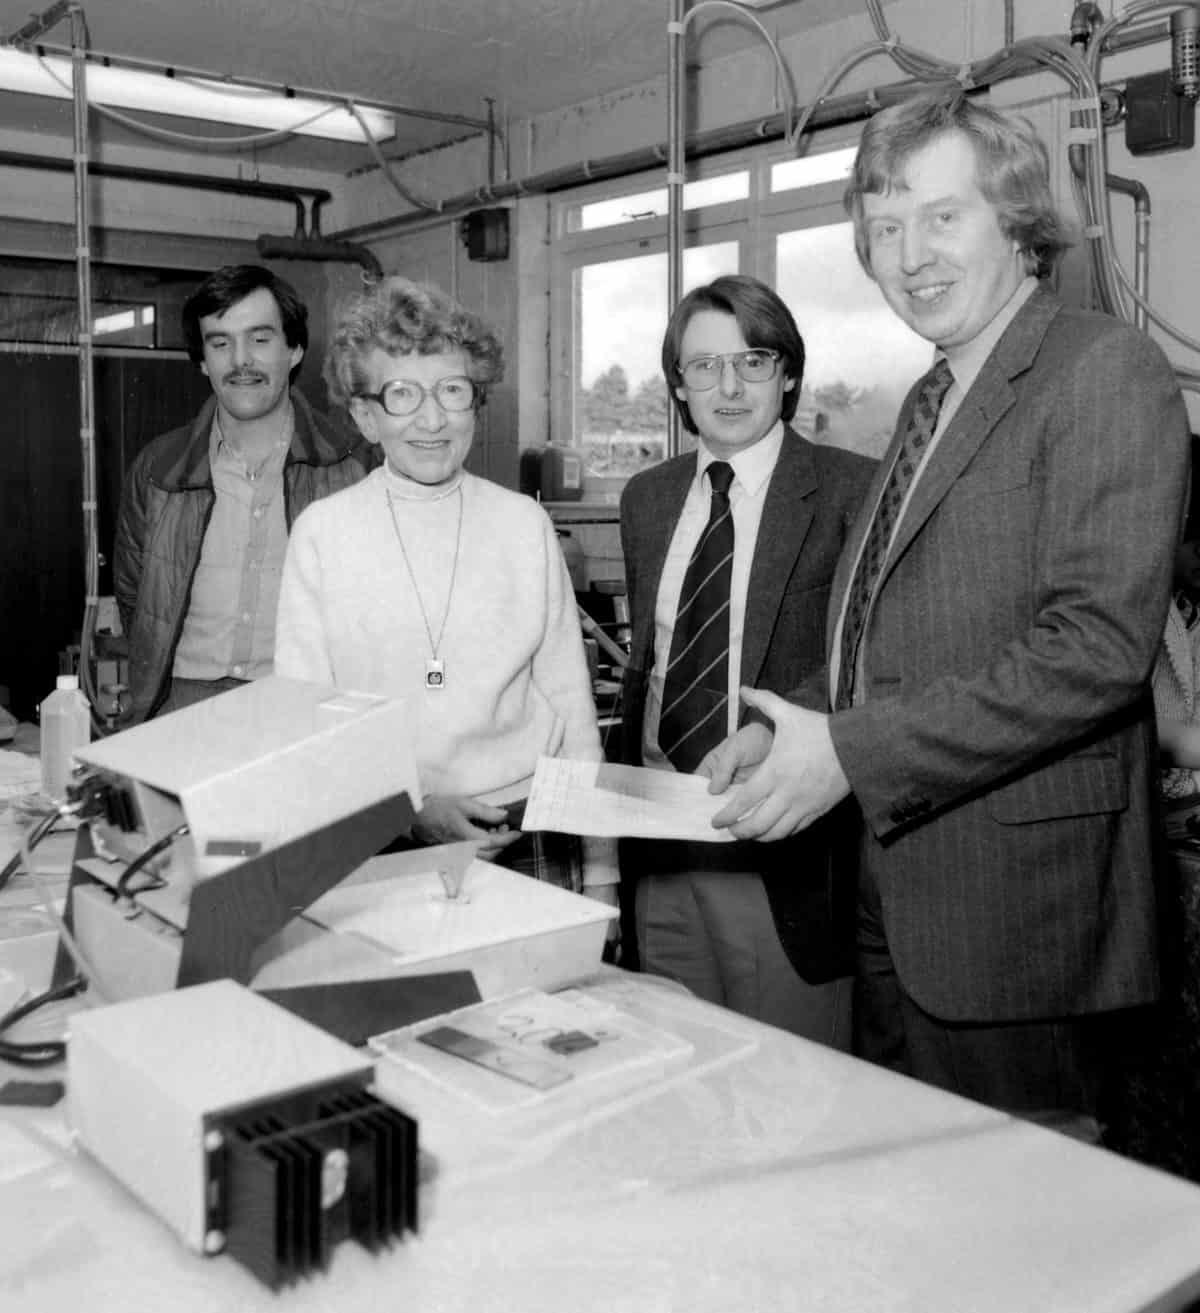 Ralph Young and Eddie Ruffell discuss the new computerised admin system with Doris, who ran the filter department for many years